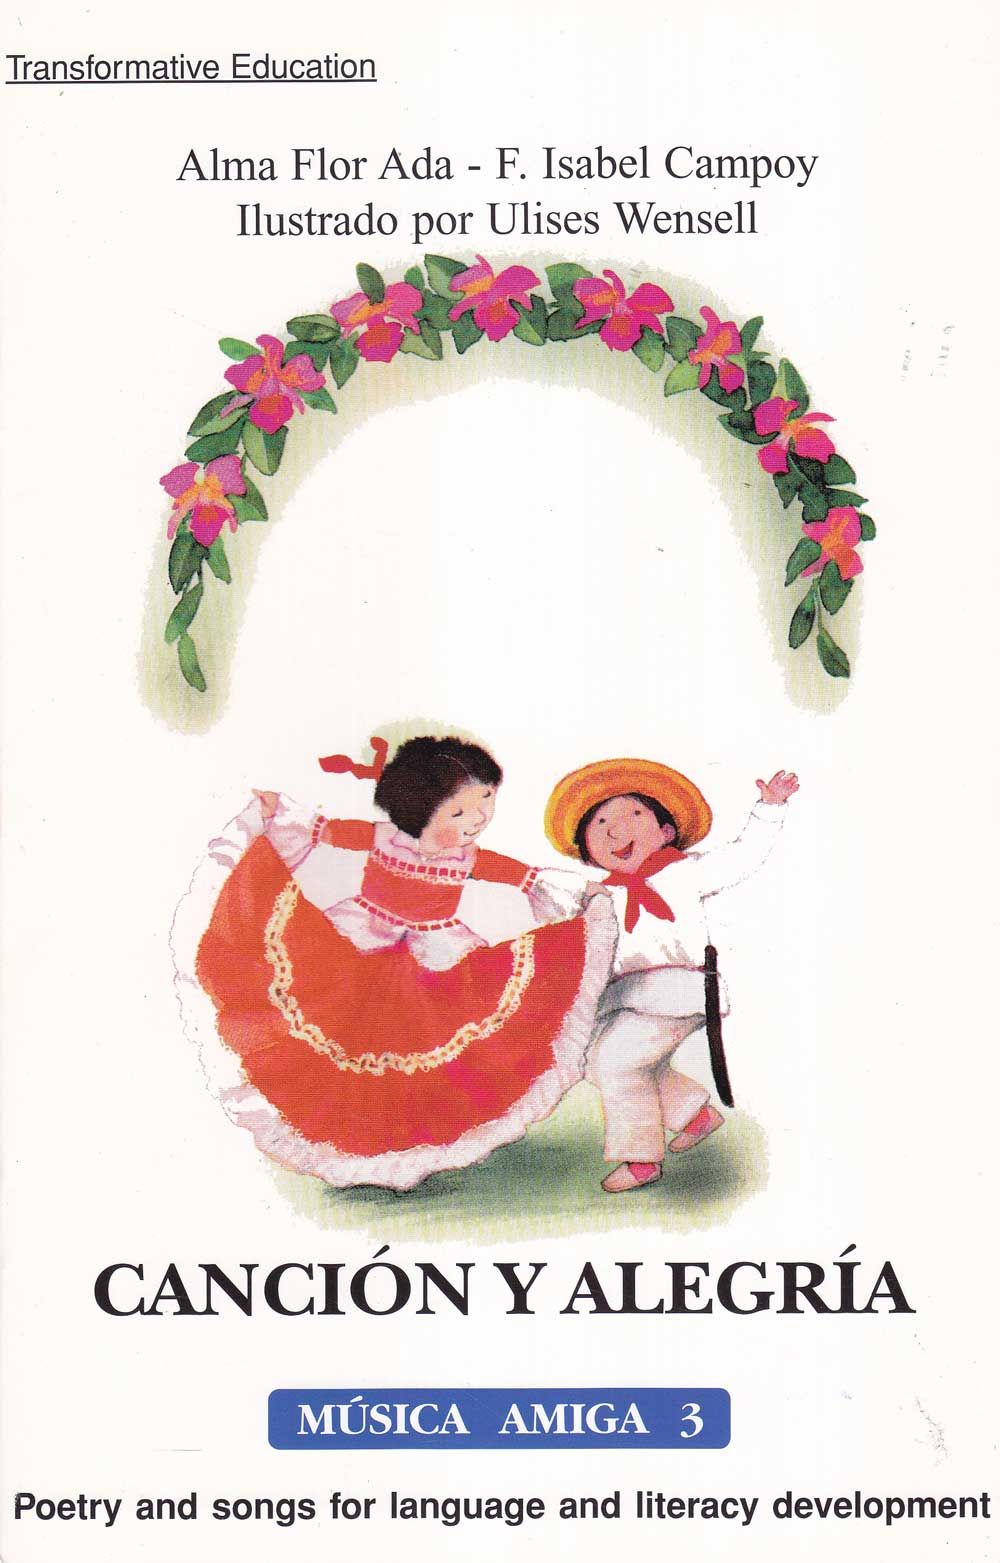 Musica Amiga Poetry and Music Collection, Rey Del Sol, Del Sol Books, Del Sol University